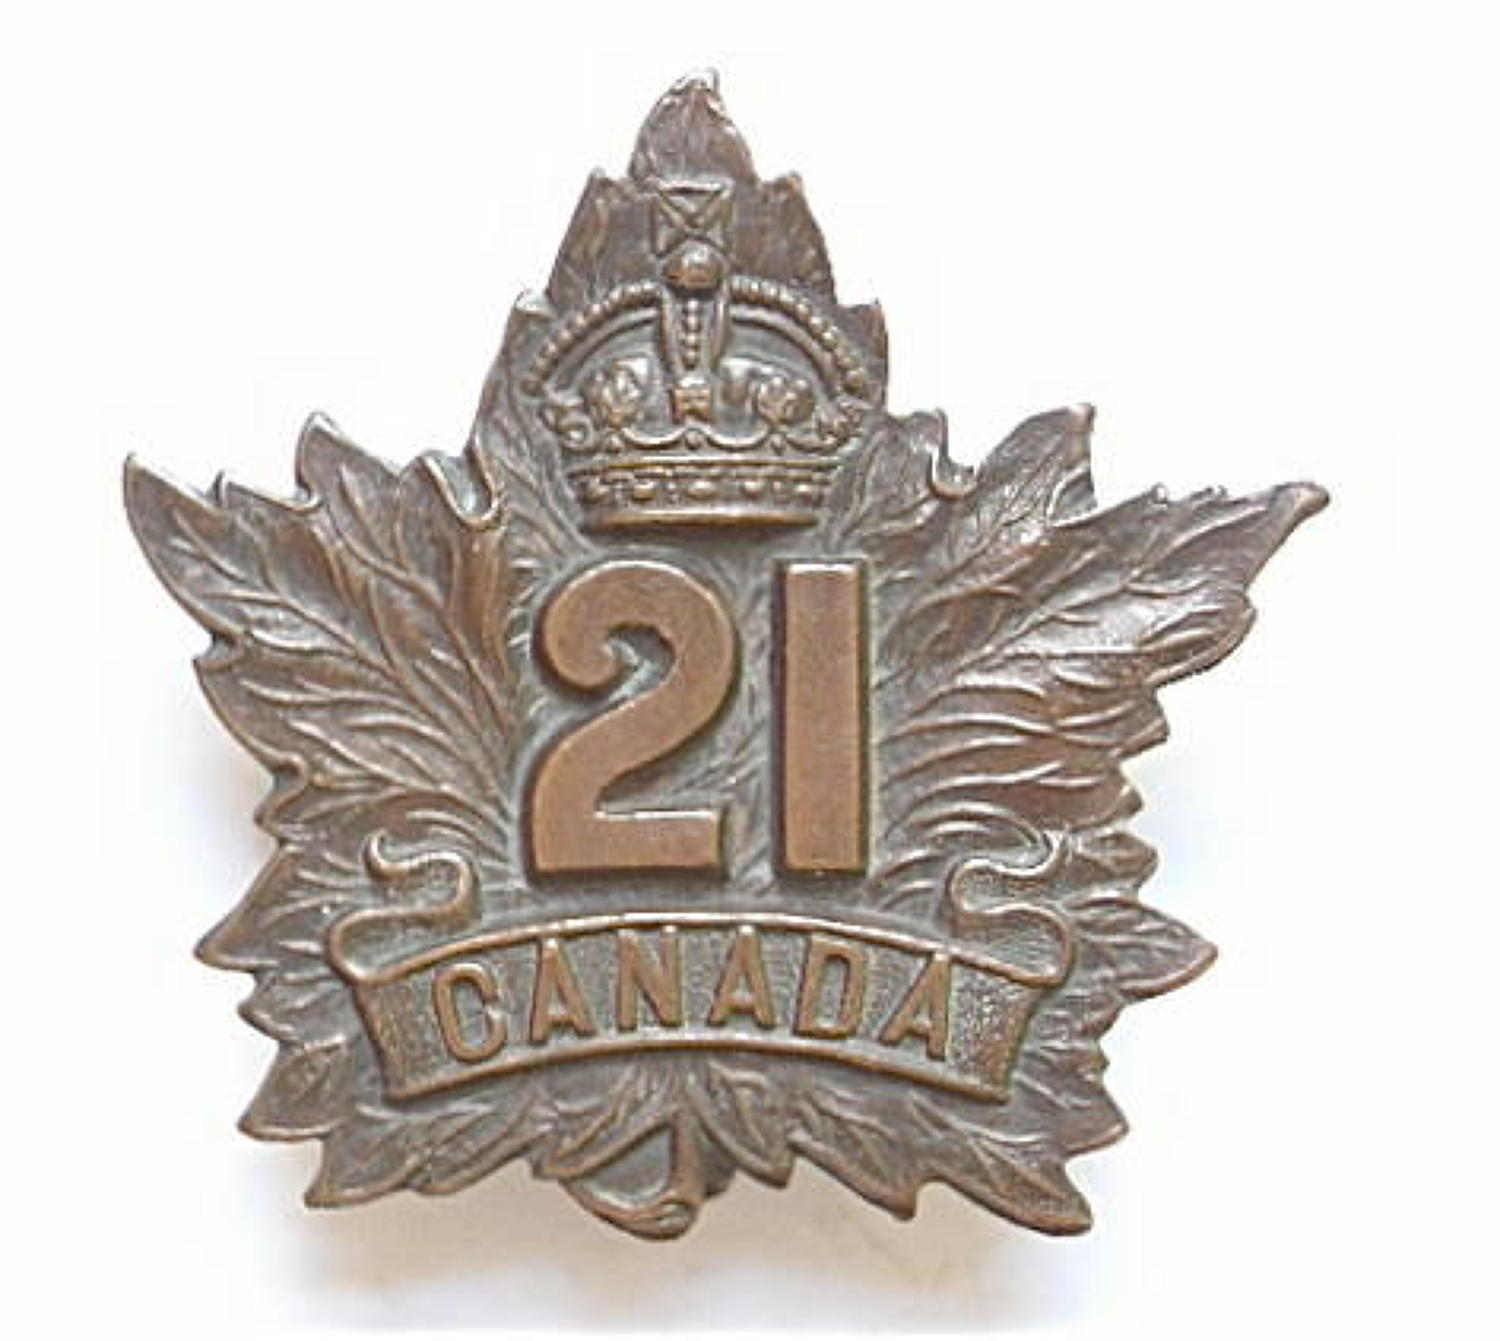 WW1 21st Bn CEF Cap Badge.